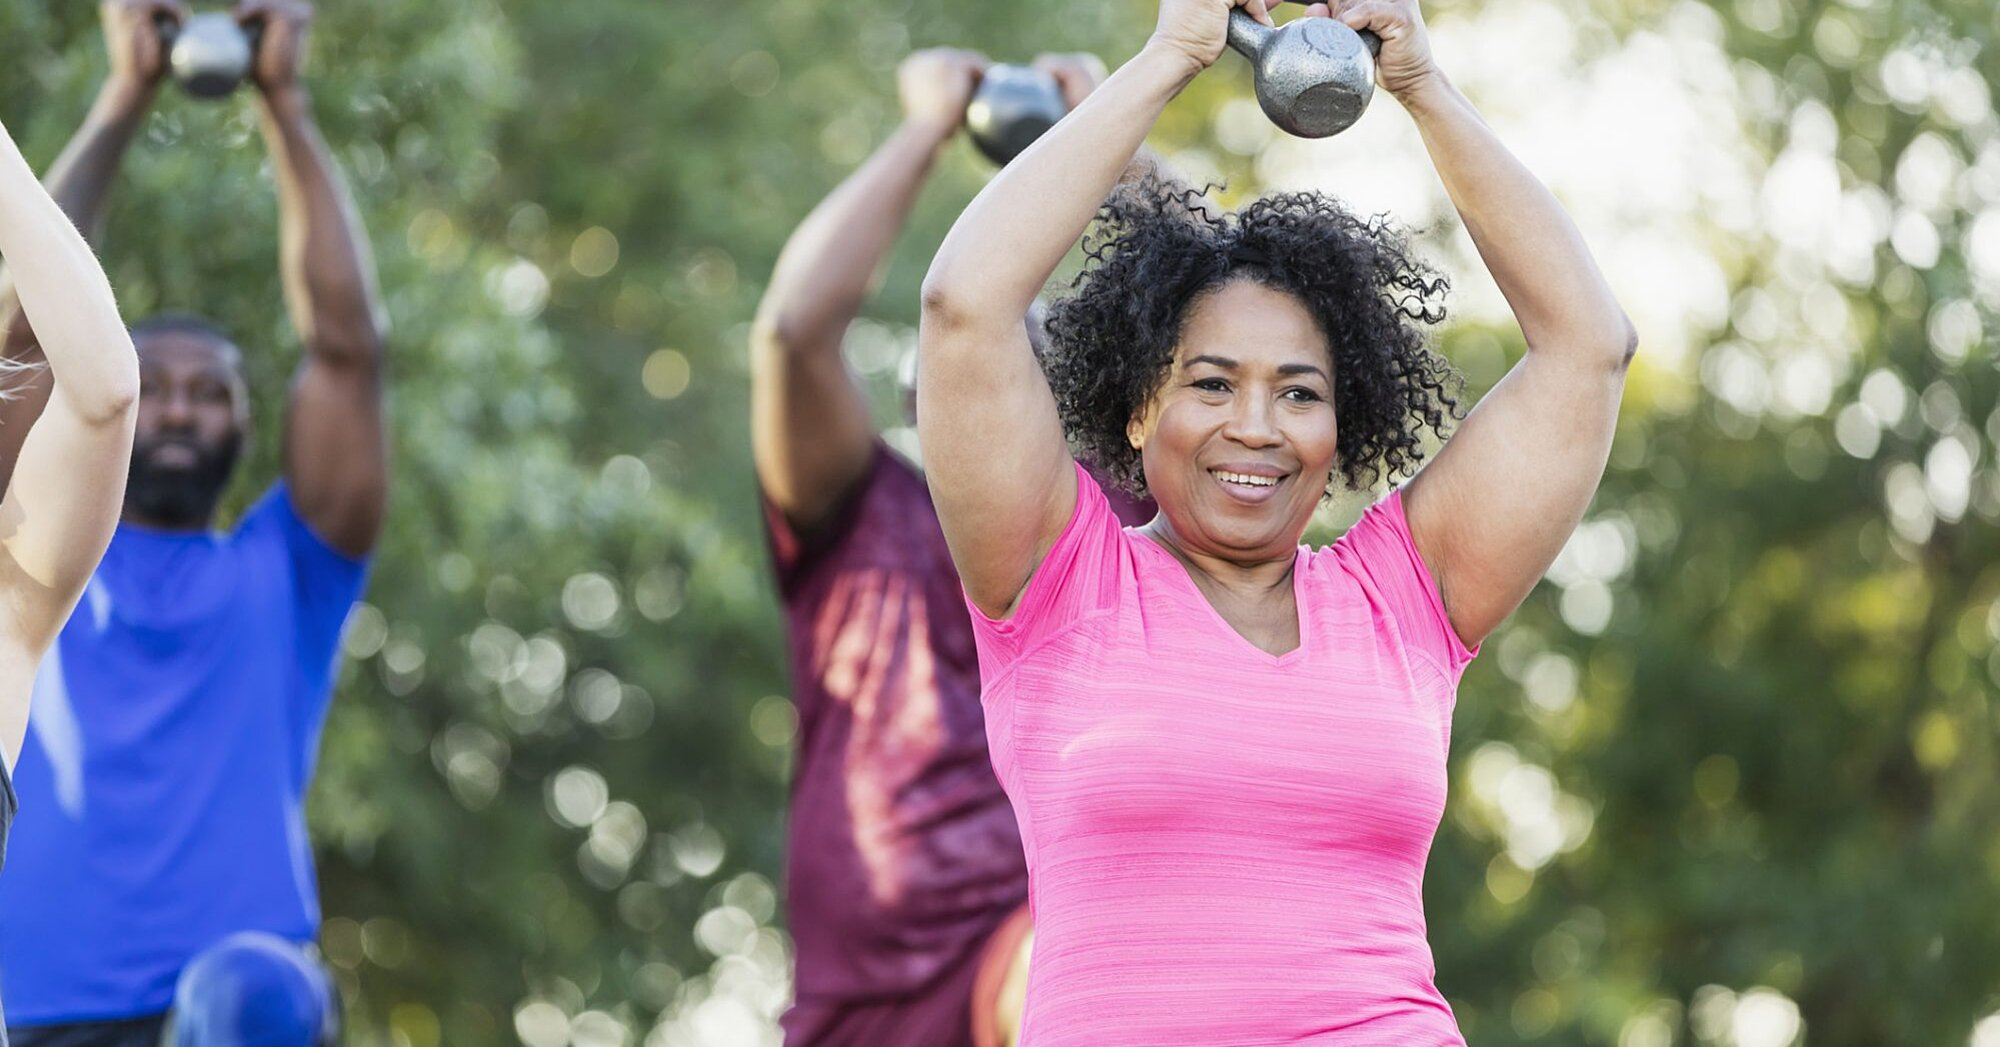 Missing the Gym? Experts Say You Might Want to Consider Taking an Outdoor Fitness Class